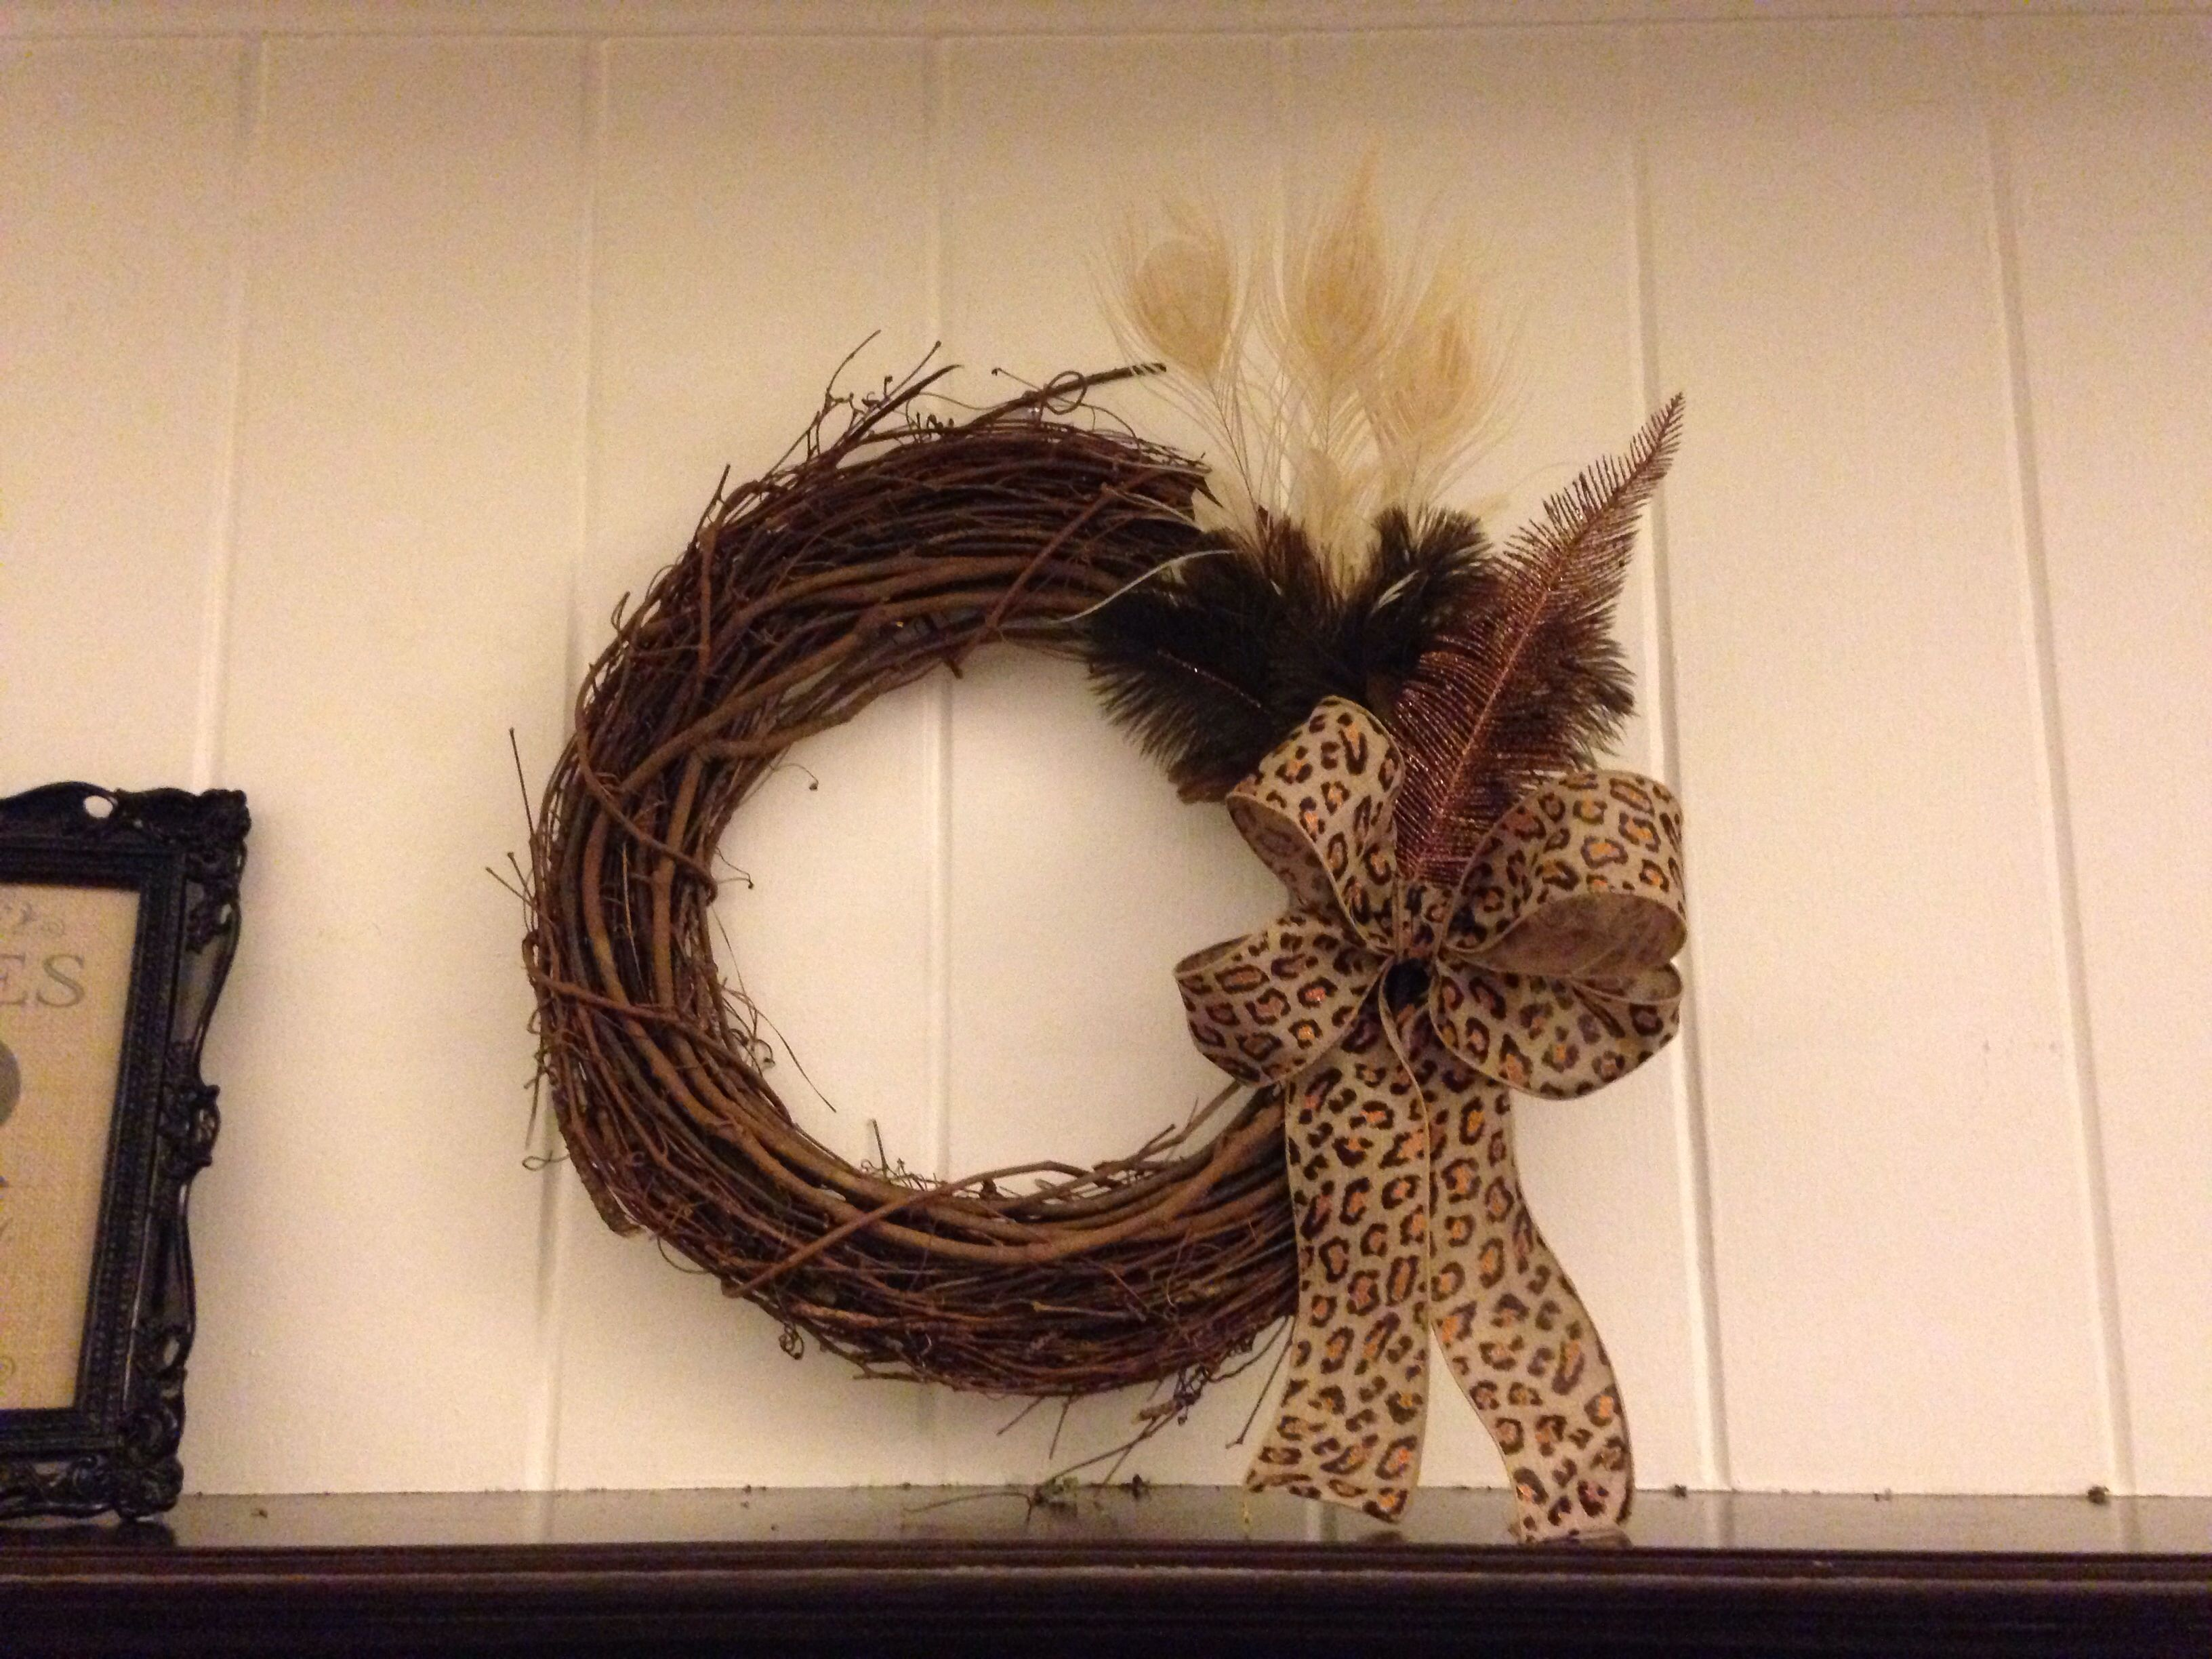 Wreath Over Fireplace Inspirational Wreath Over Fireplace From Feathers From Our Wedding